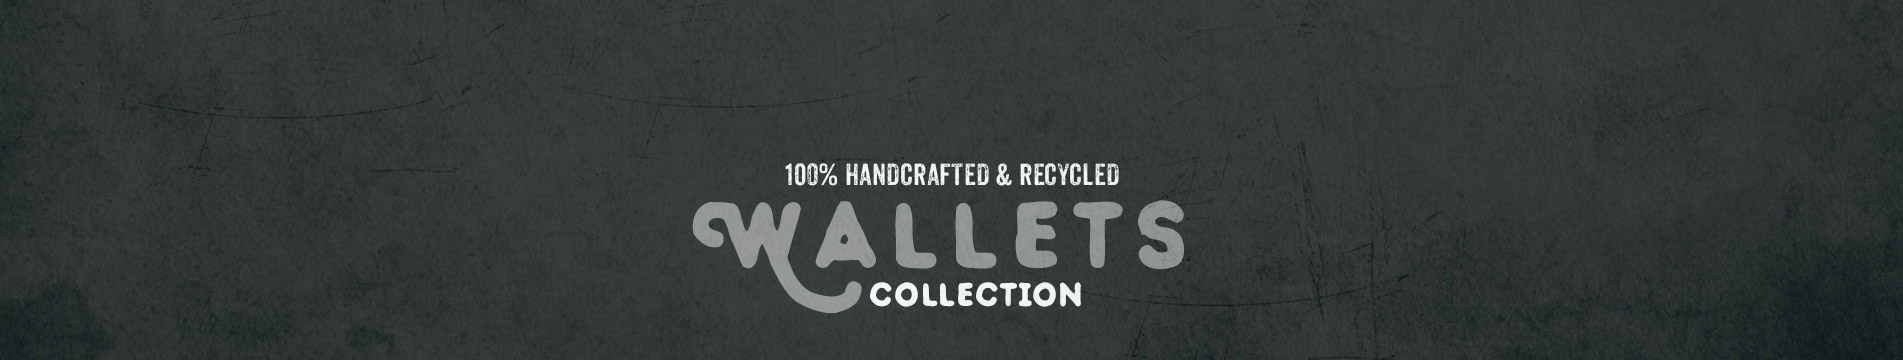 Handmade Recycled Wallets